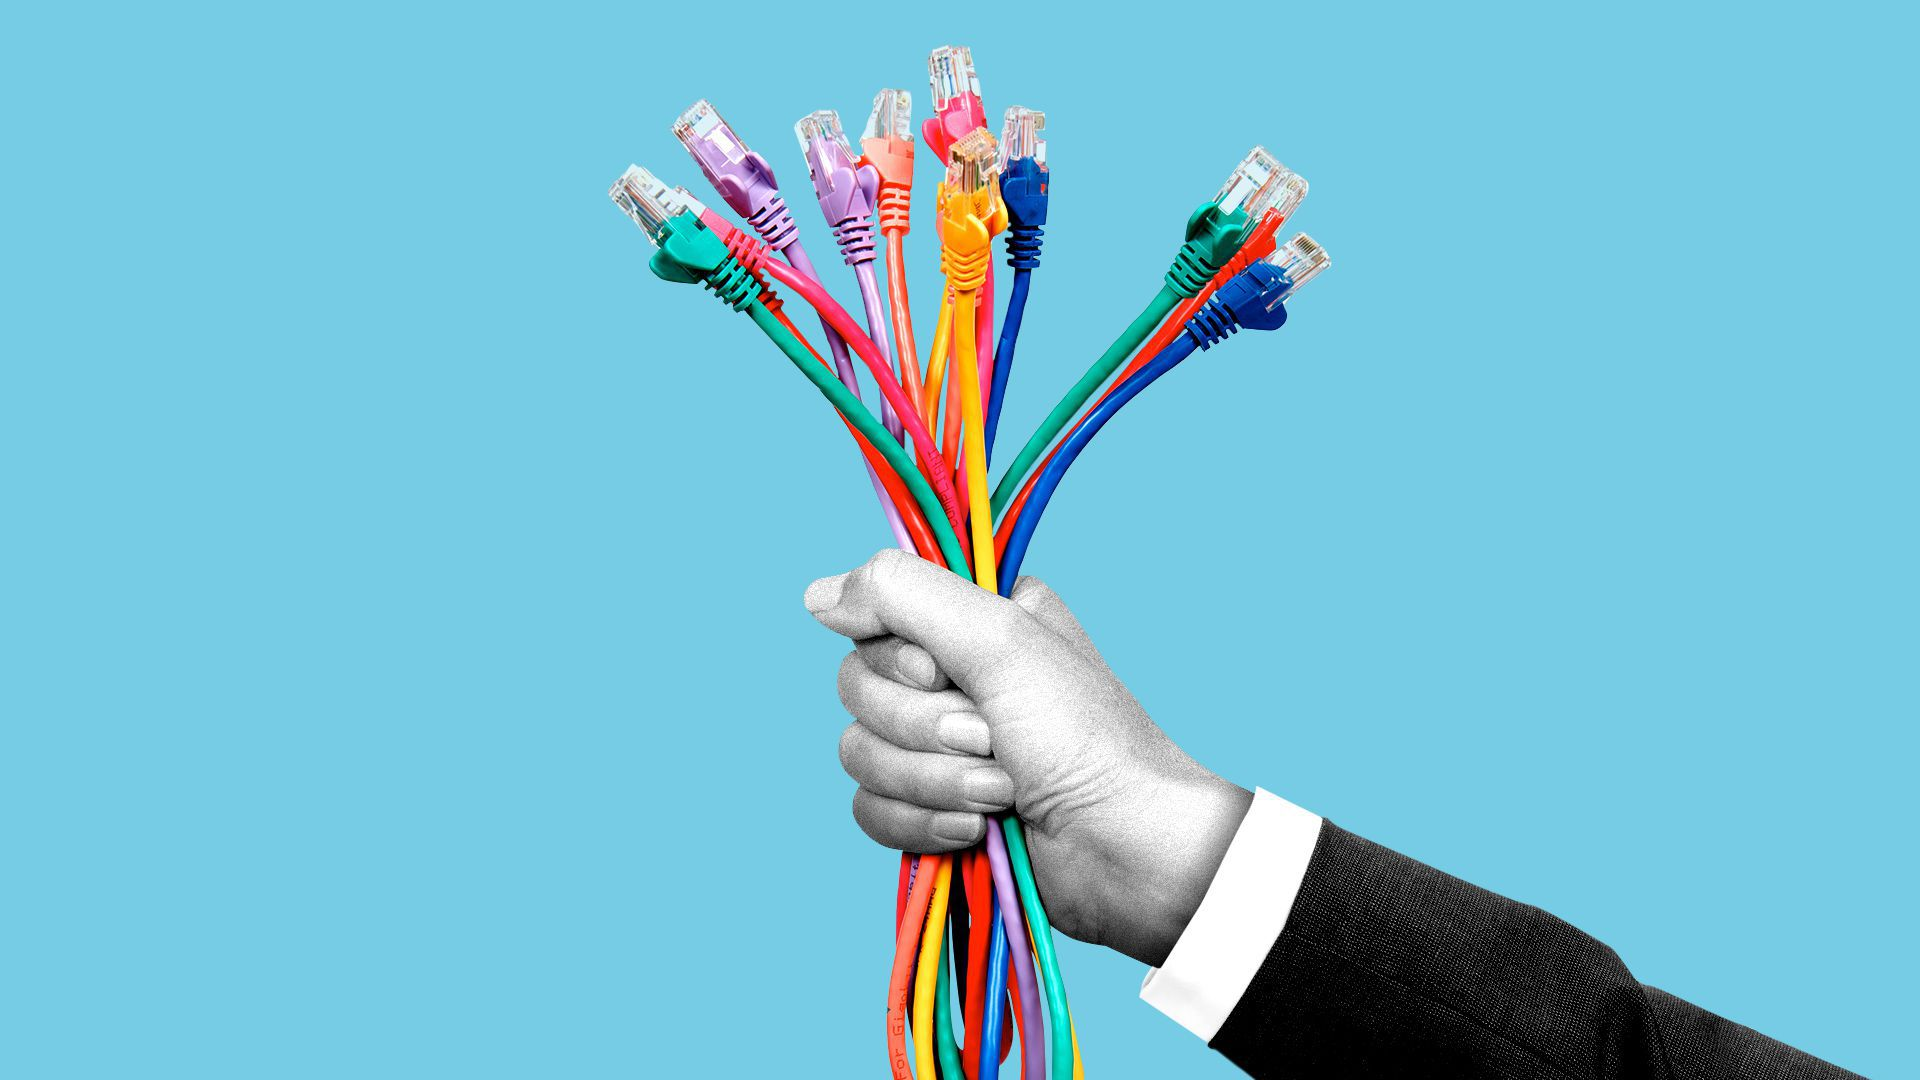 Illustration of a suited hand holding out a lot of ethernet cables.